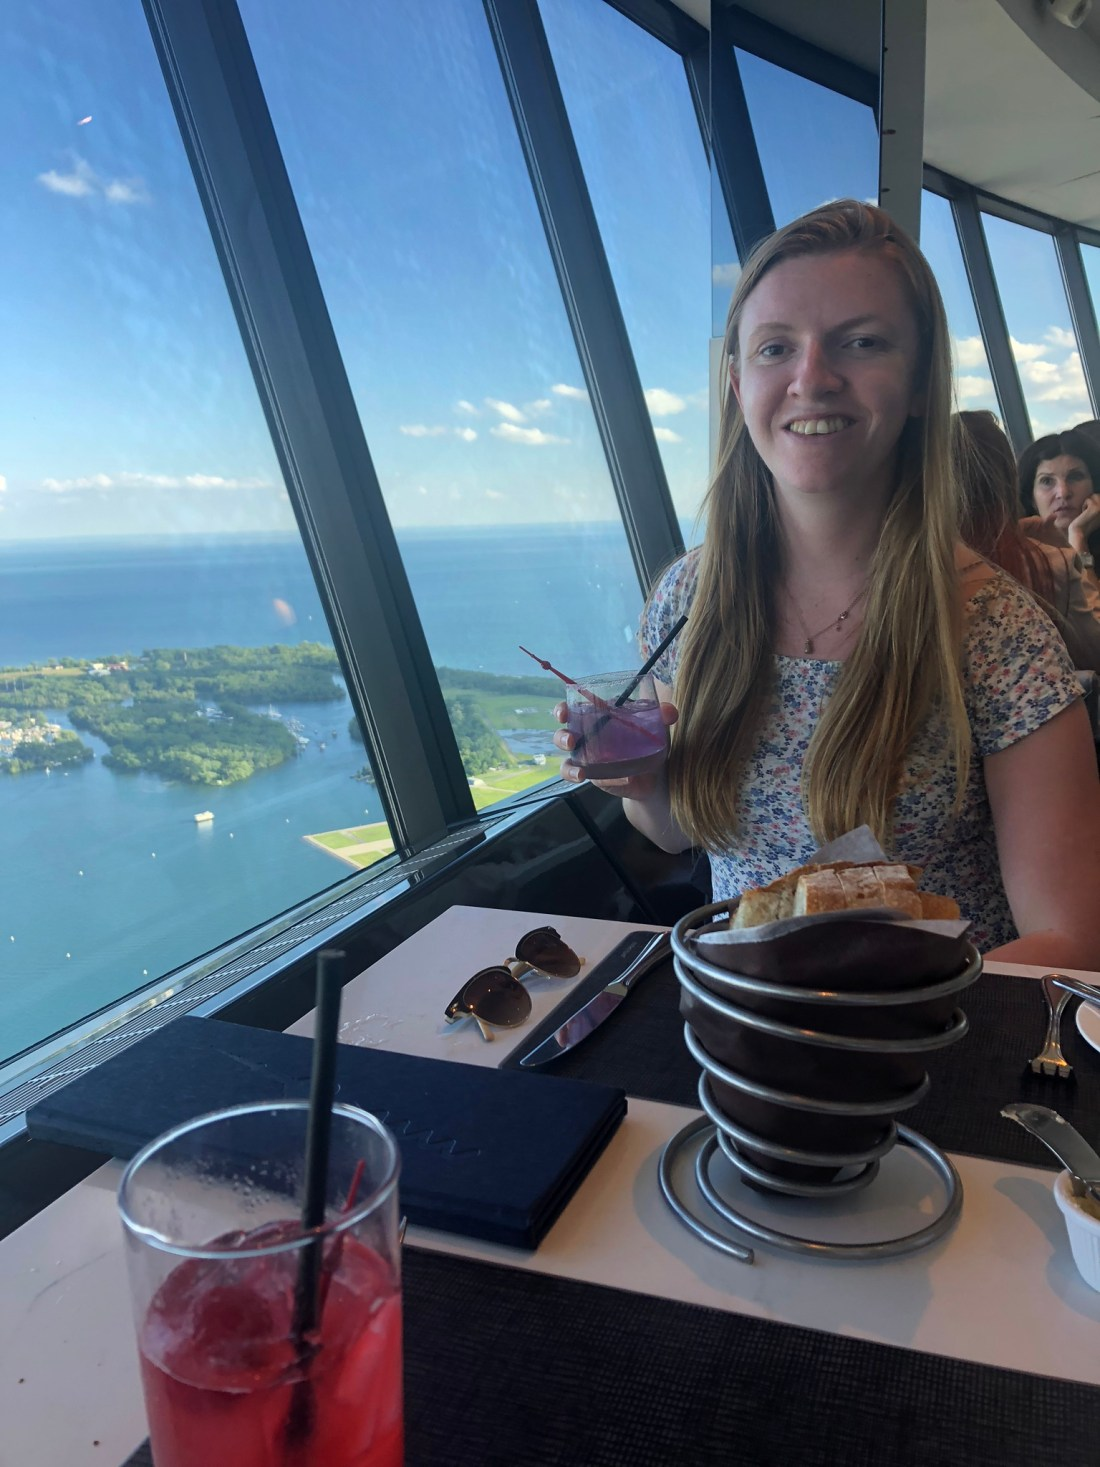 Dinner in the CN Tower